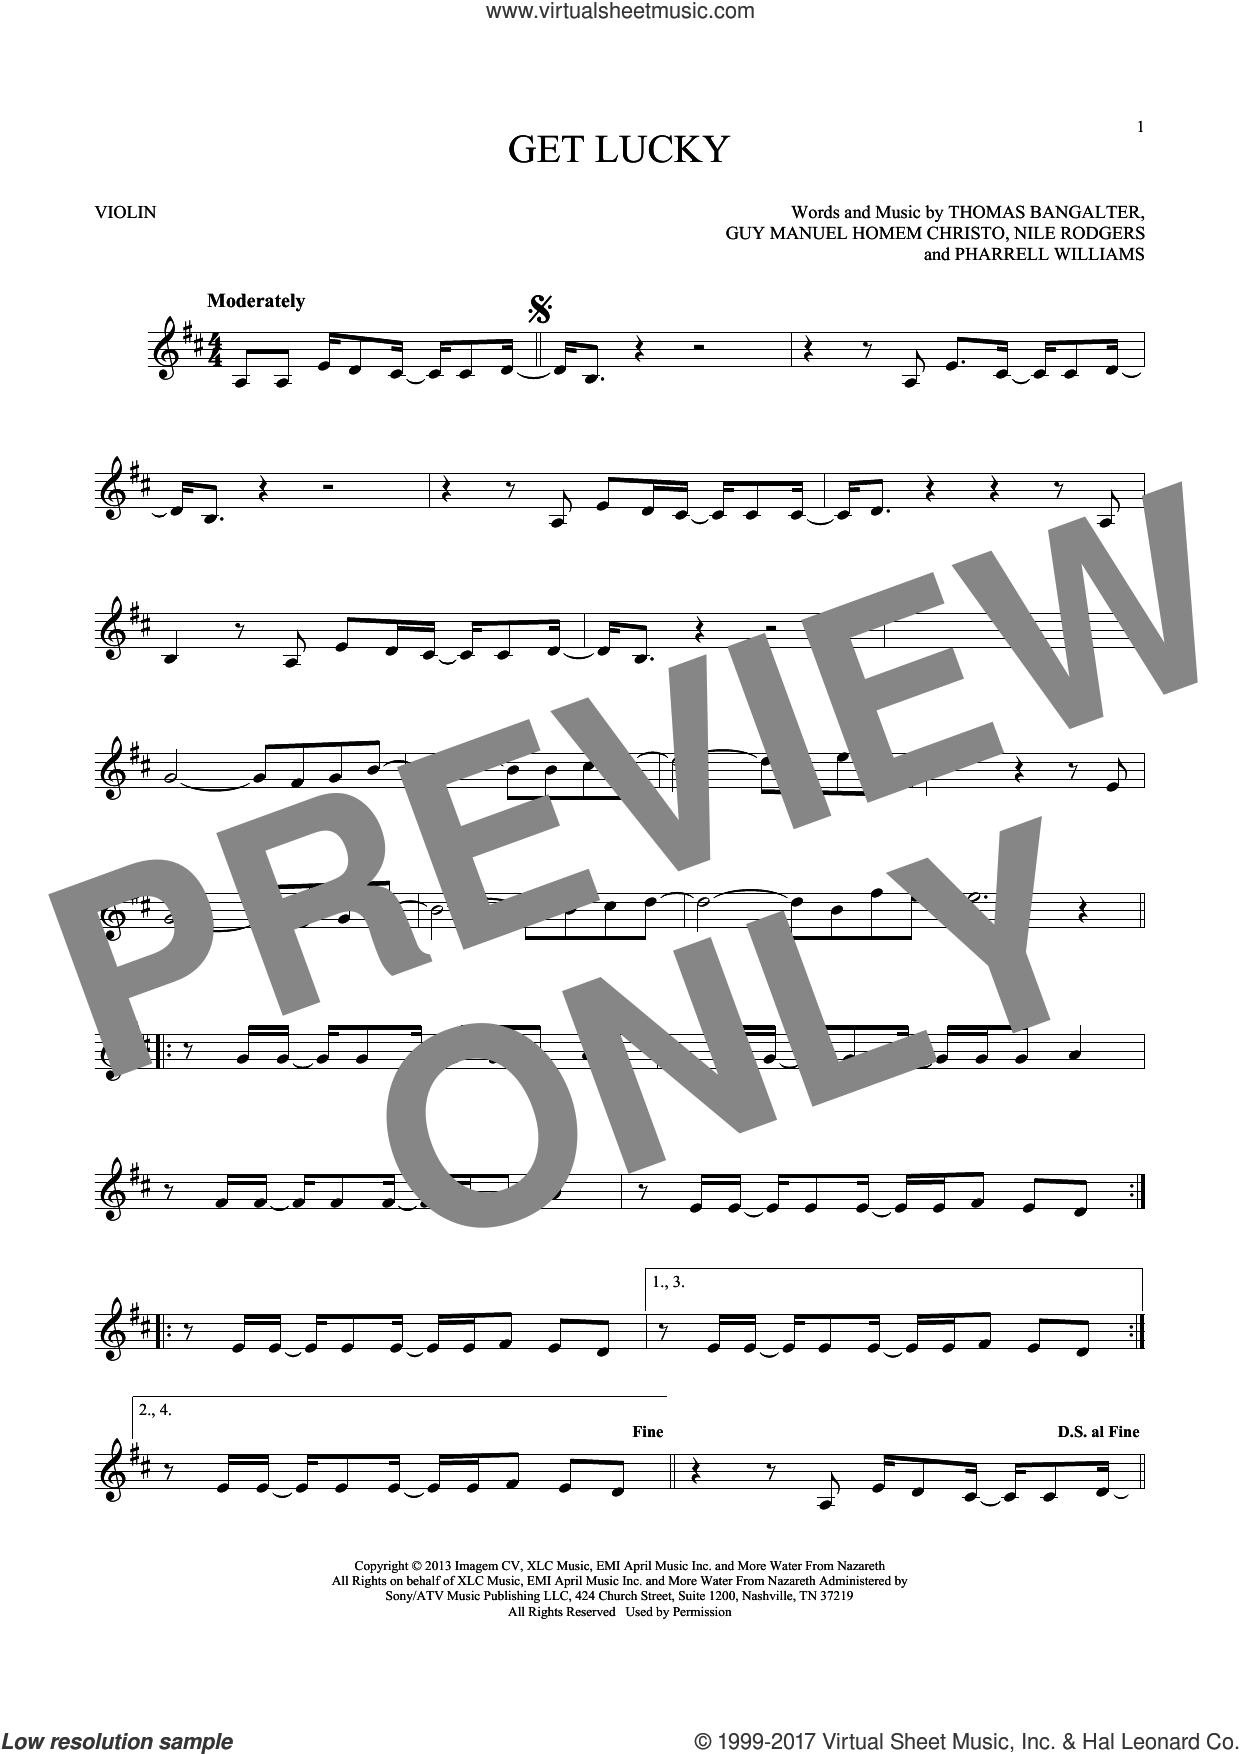 Get Lucky sheet music for violin solo by Daft Punk Featuring Pharrell Williams, Nile Rodgers and Pharrell Williams, intermediate. Score Image Preview.